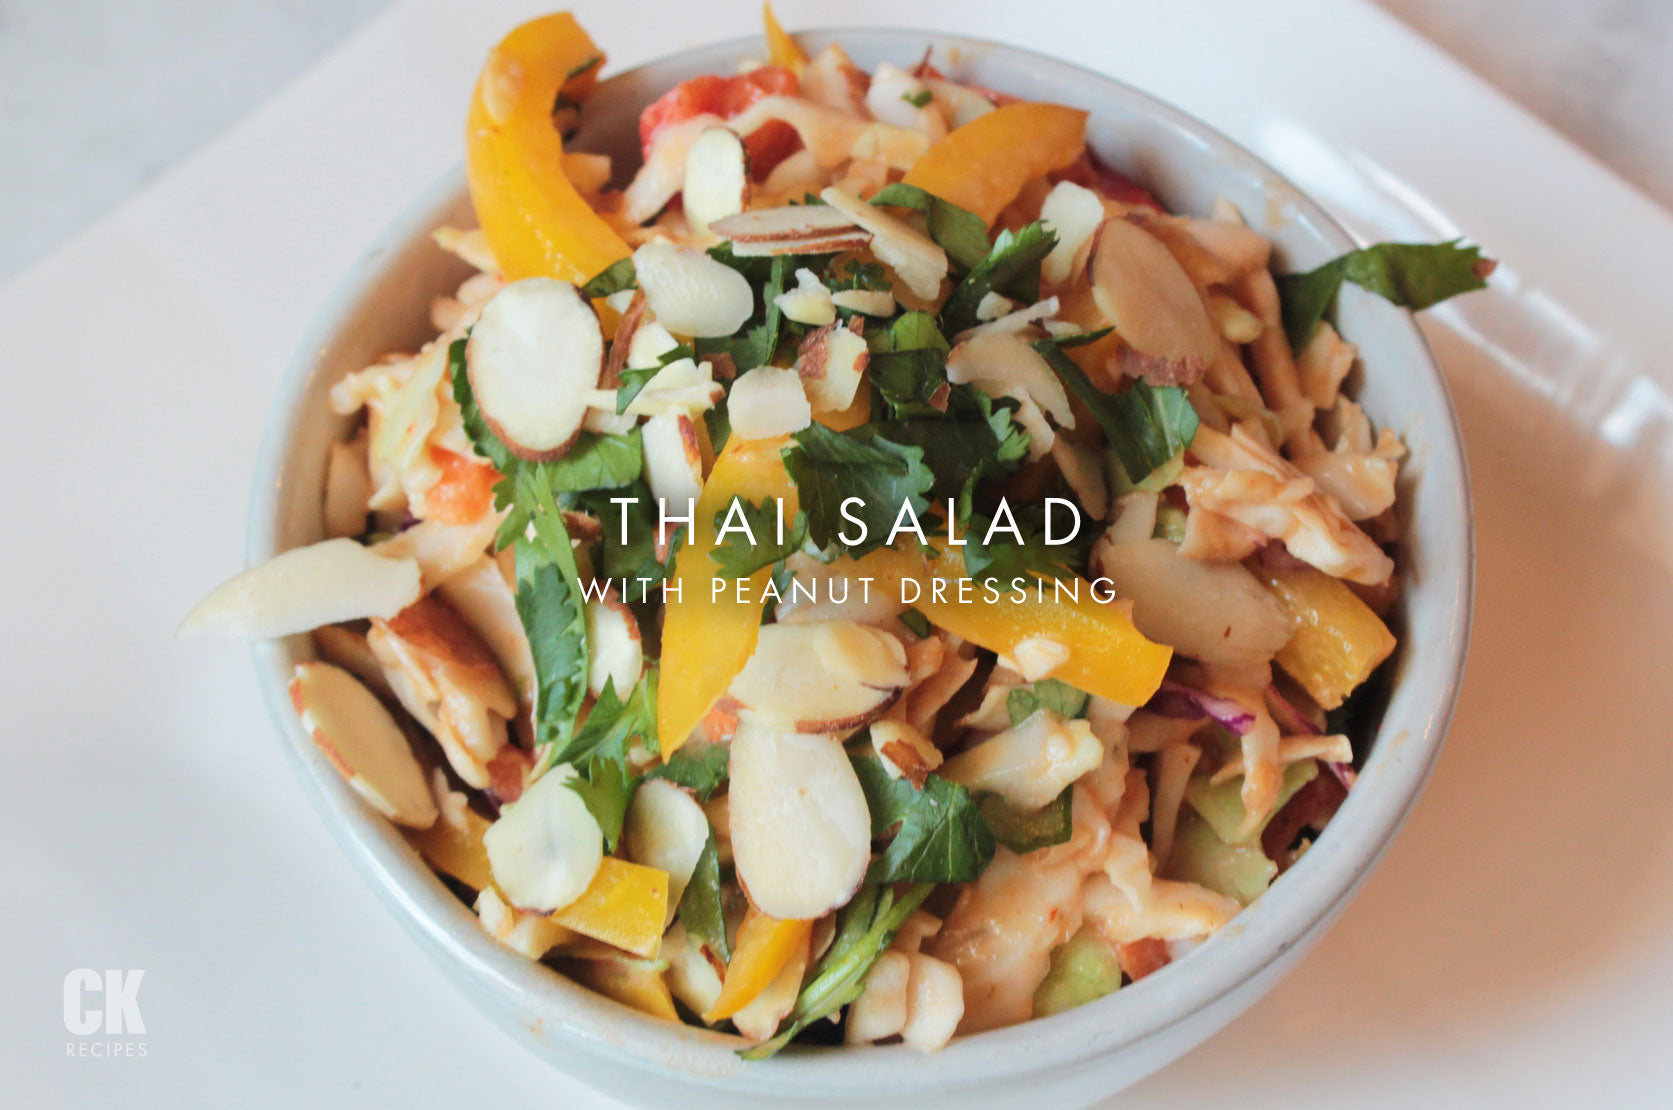 Thai-Salad-with-Peanut-Dressing-1.jpg